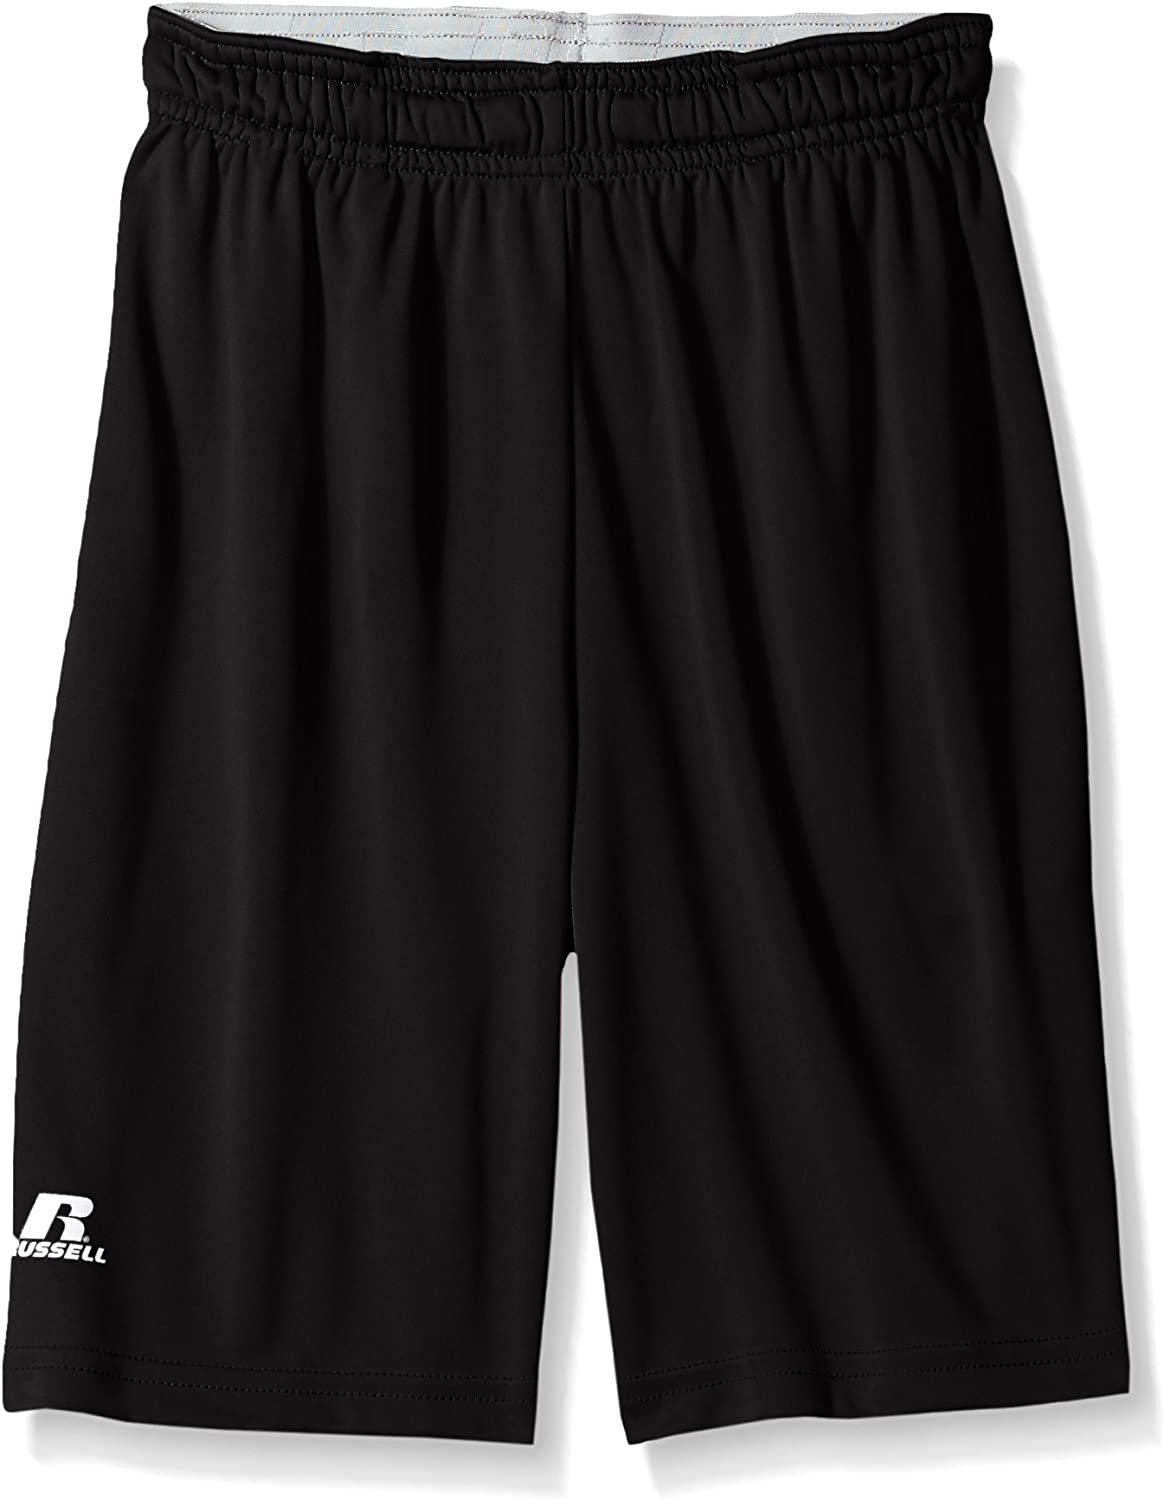 Russell Athletic Boys' Big Dri-Power Performance Short with Pockets: Clothing